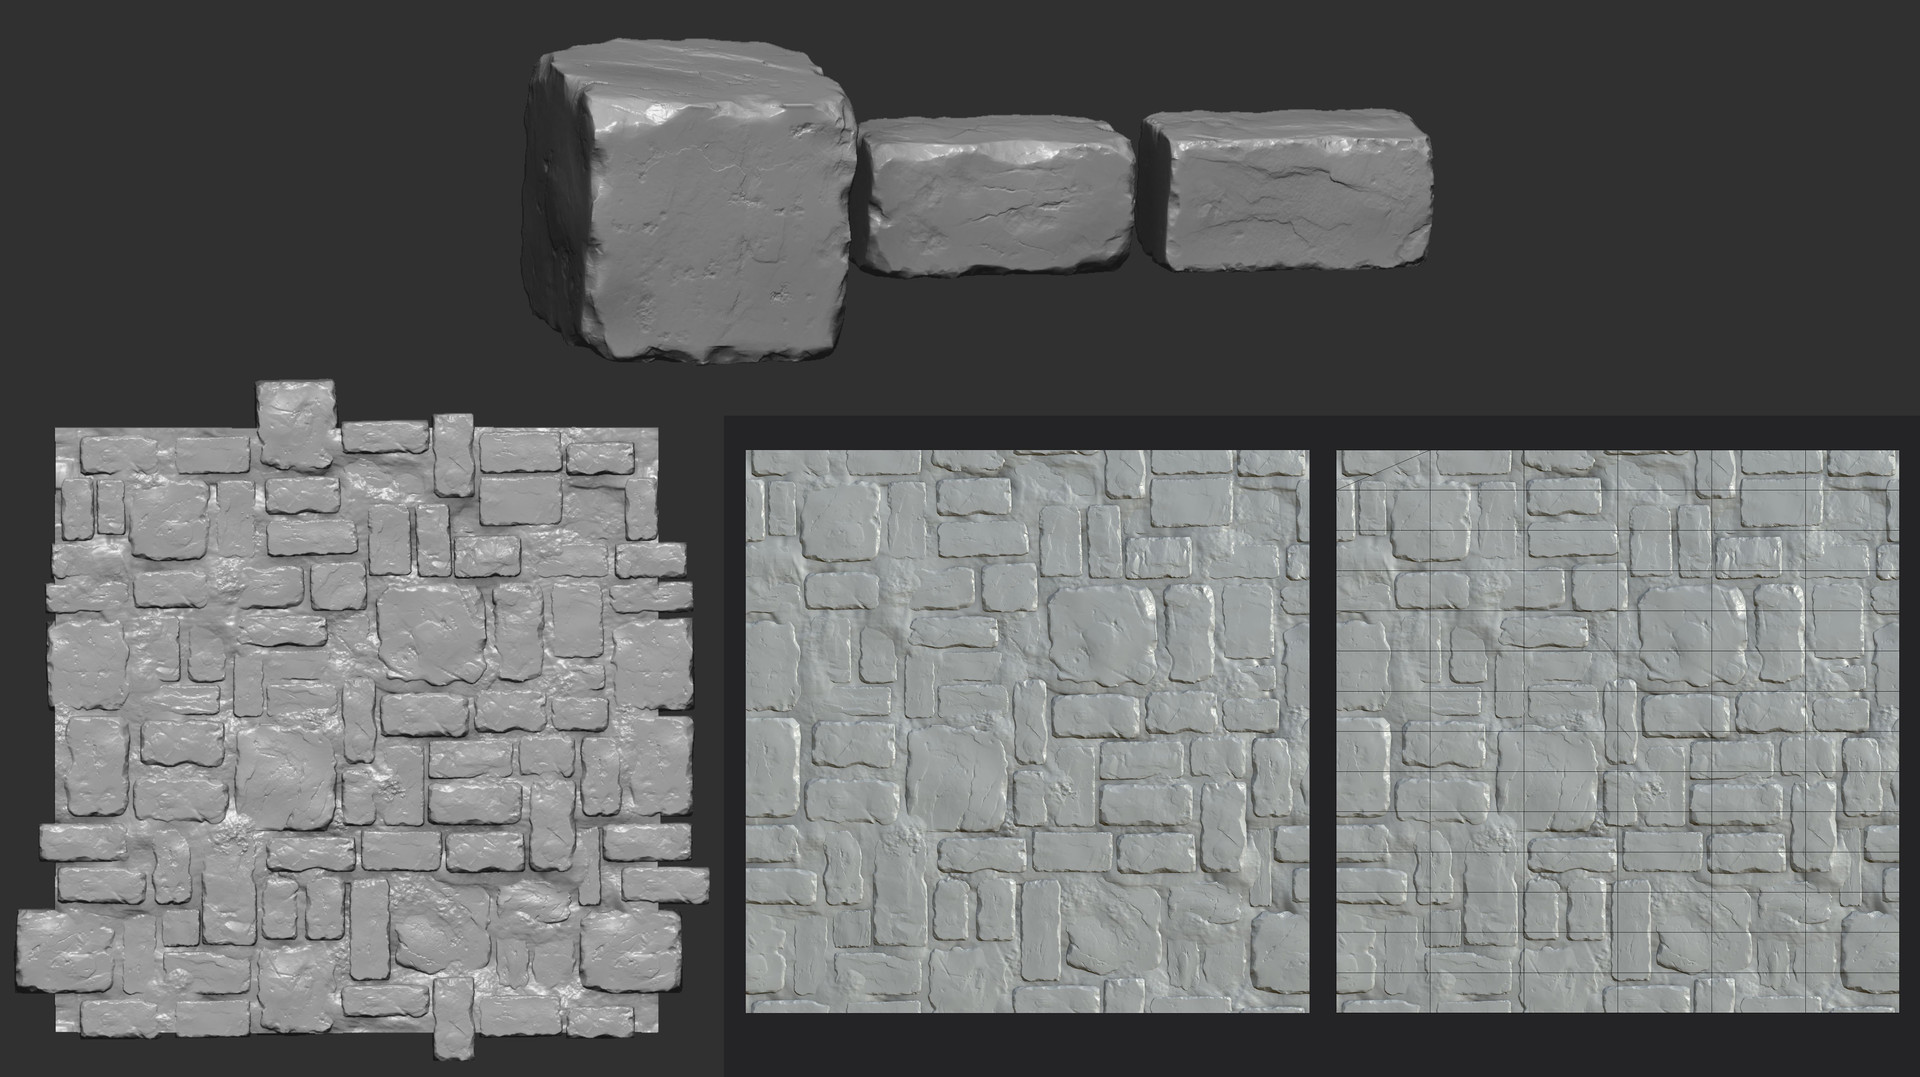 Zbrush model on top and left side, low poly bake and wire-frame on right side